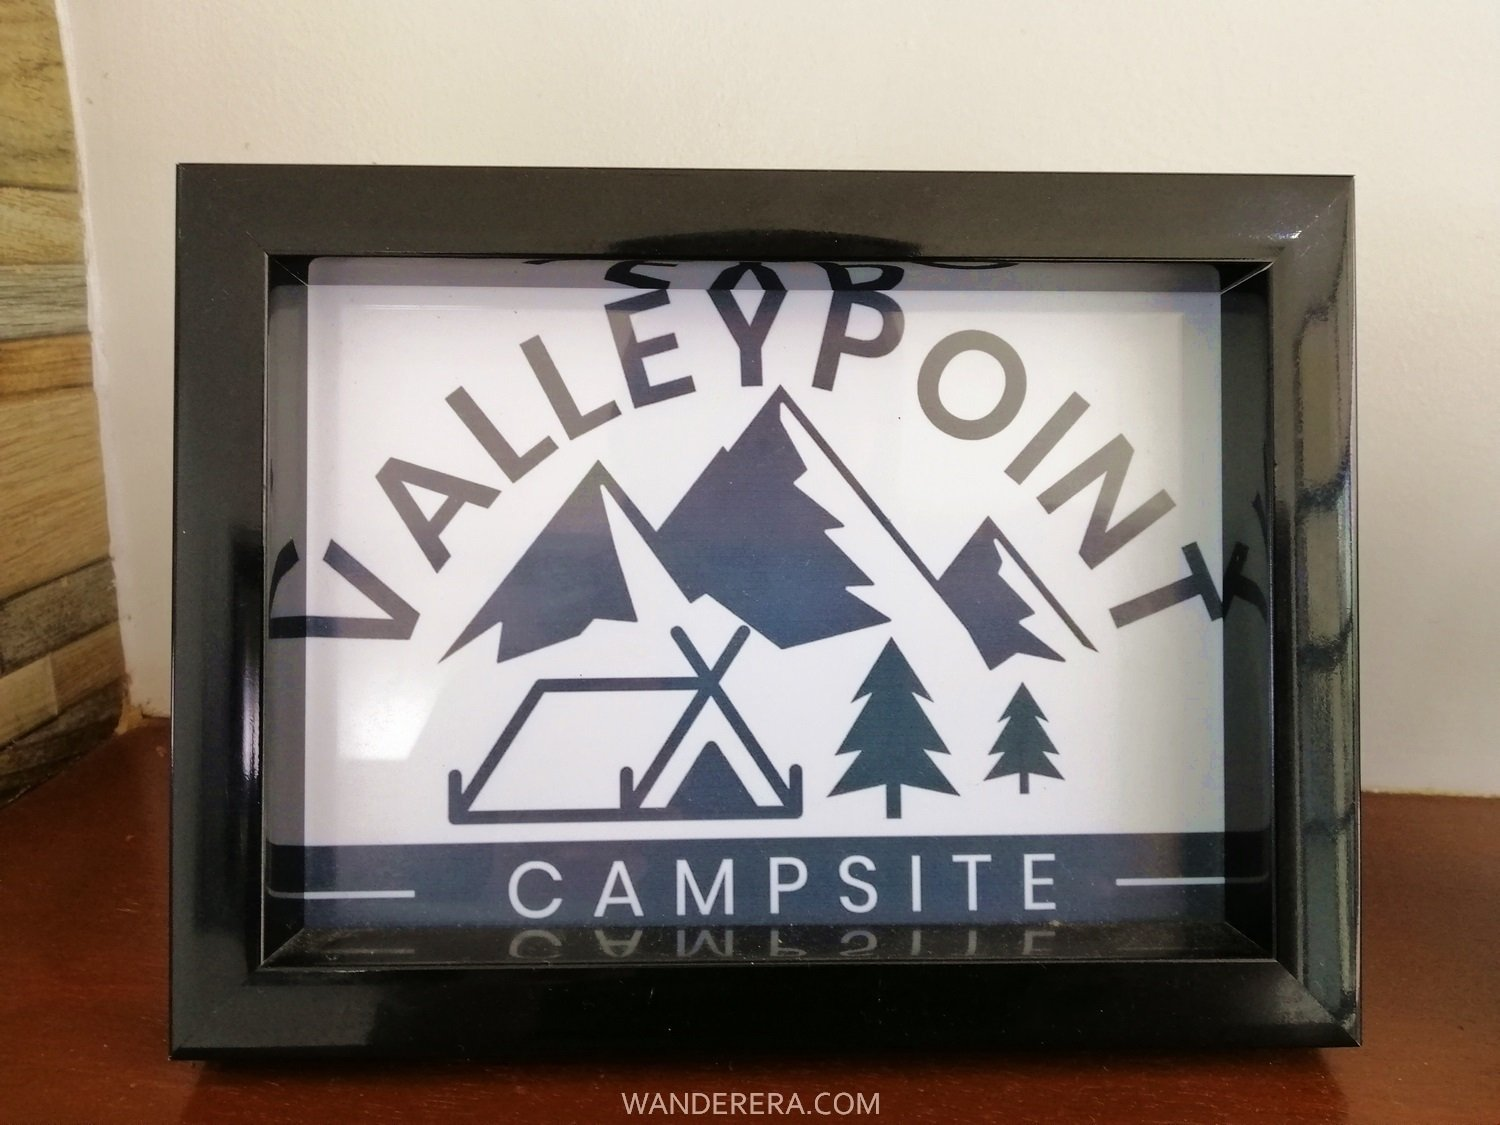 Valleypoint campsite